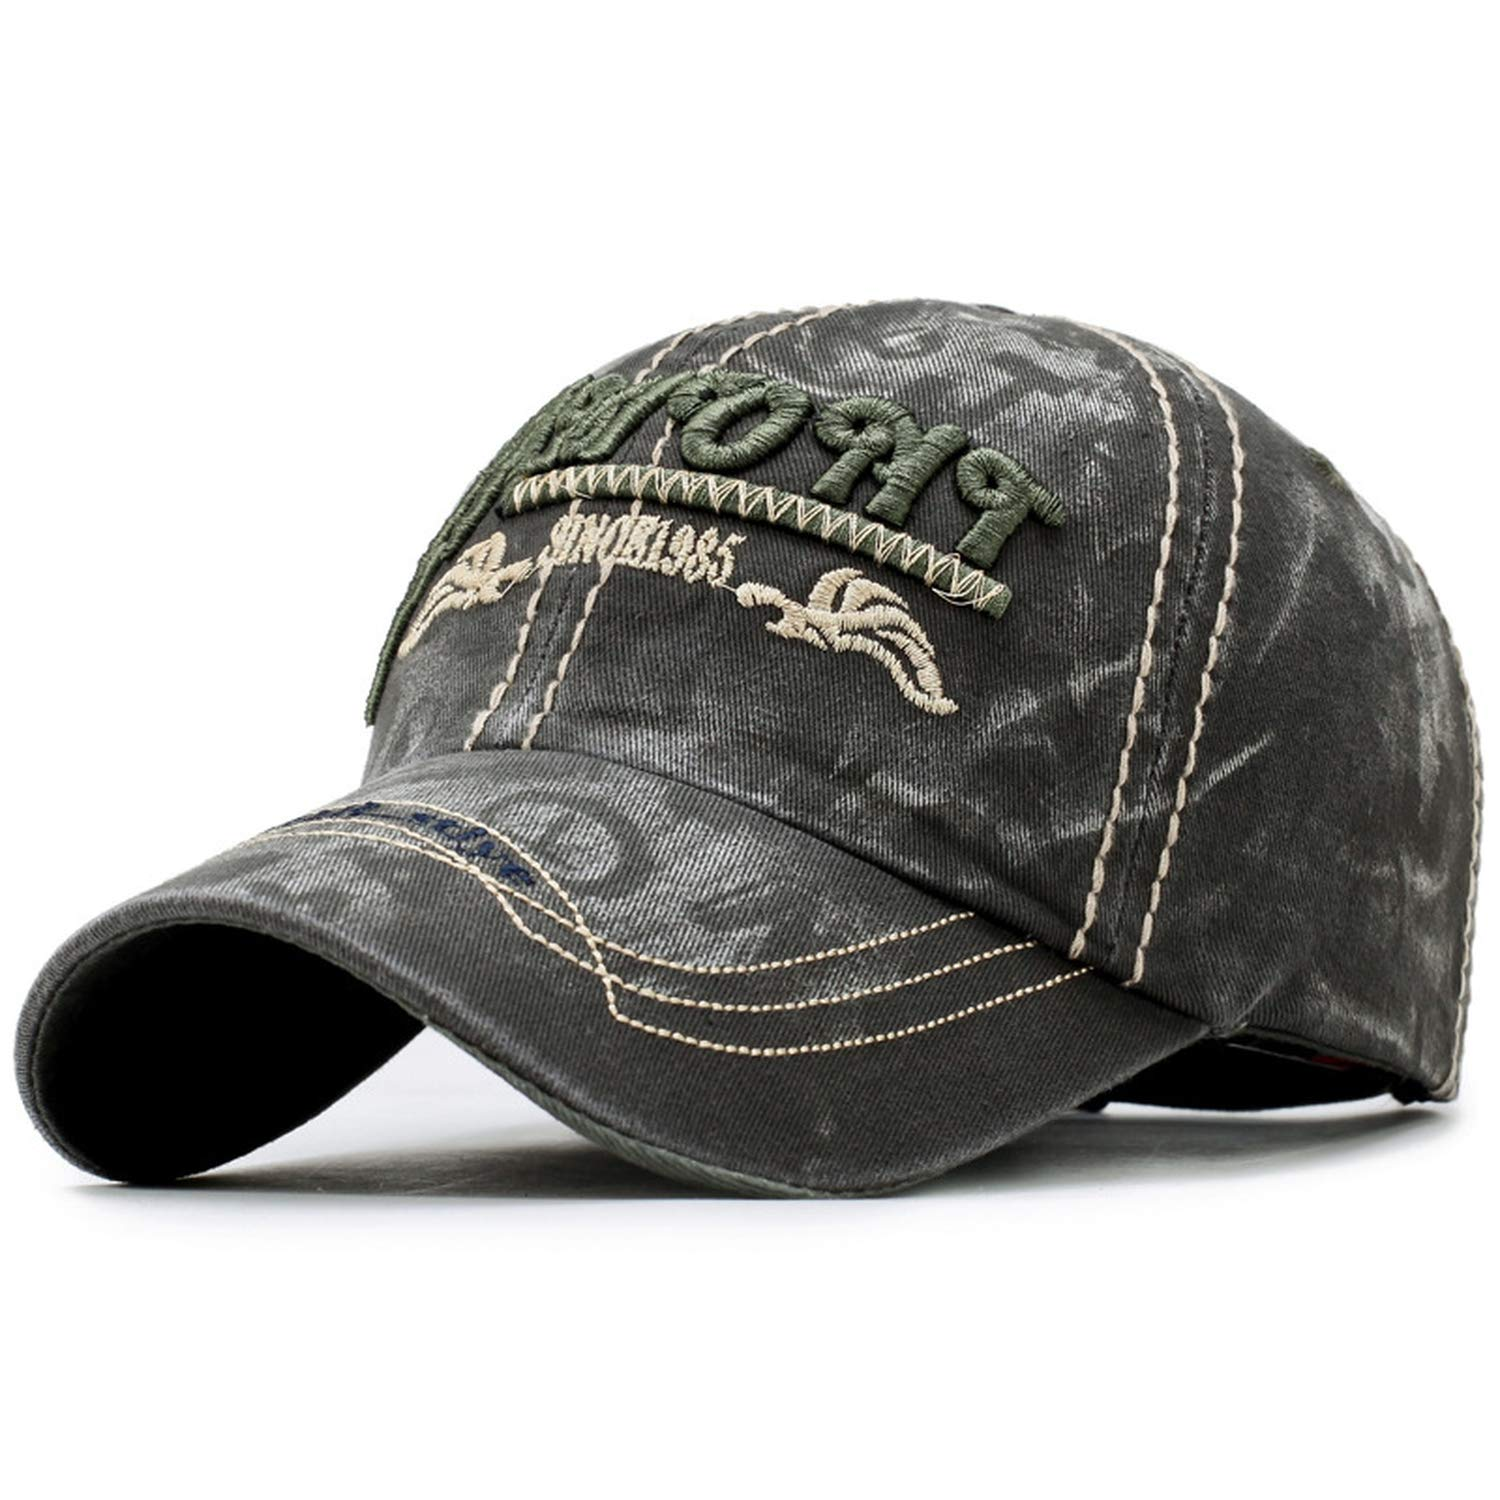 Bokun Baseball Caps Casual Washed Hat with Outdoor Caps for Men Women